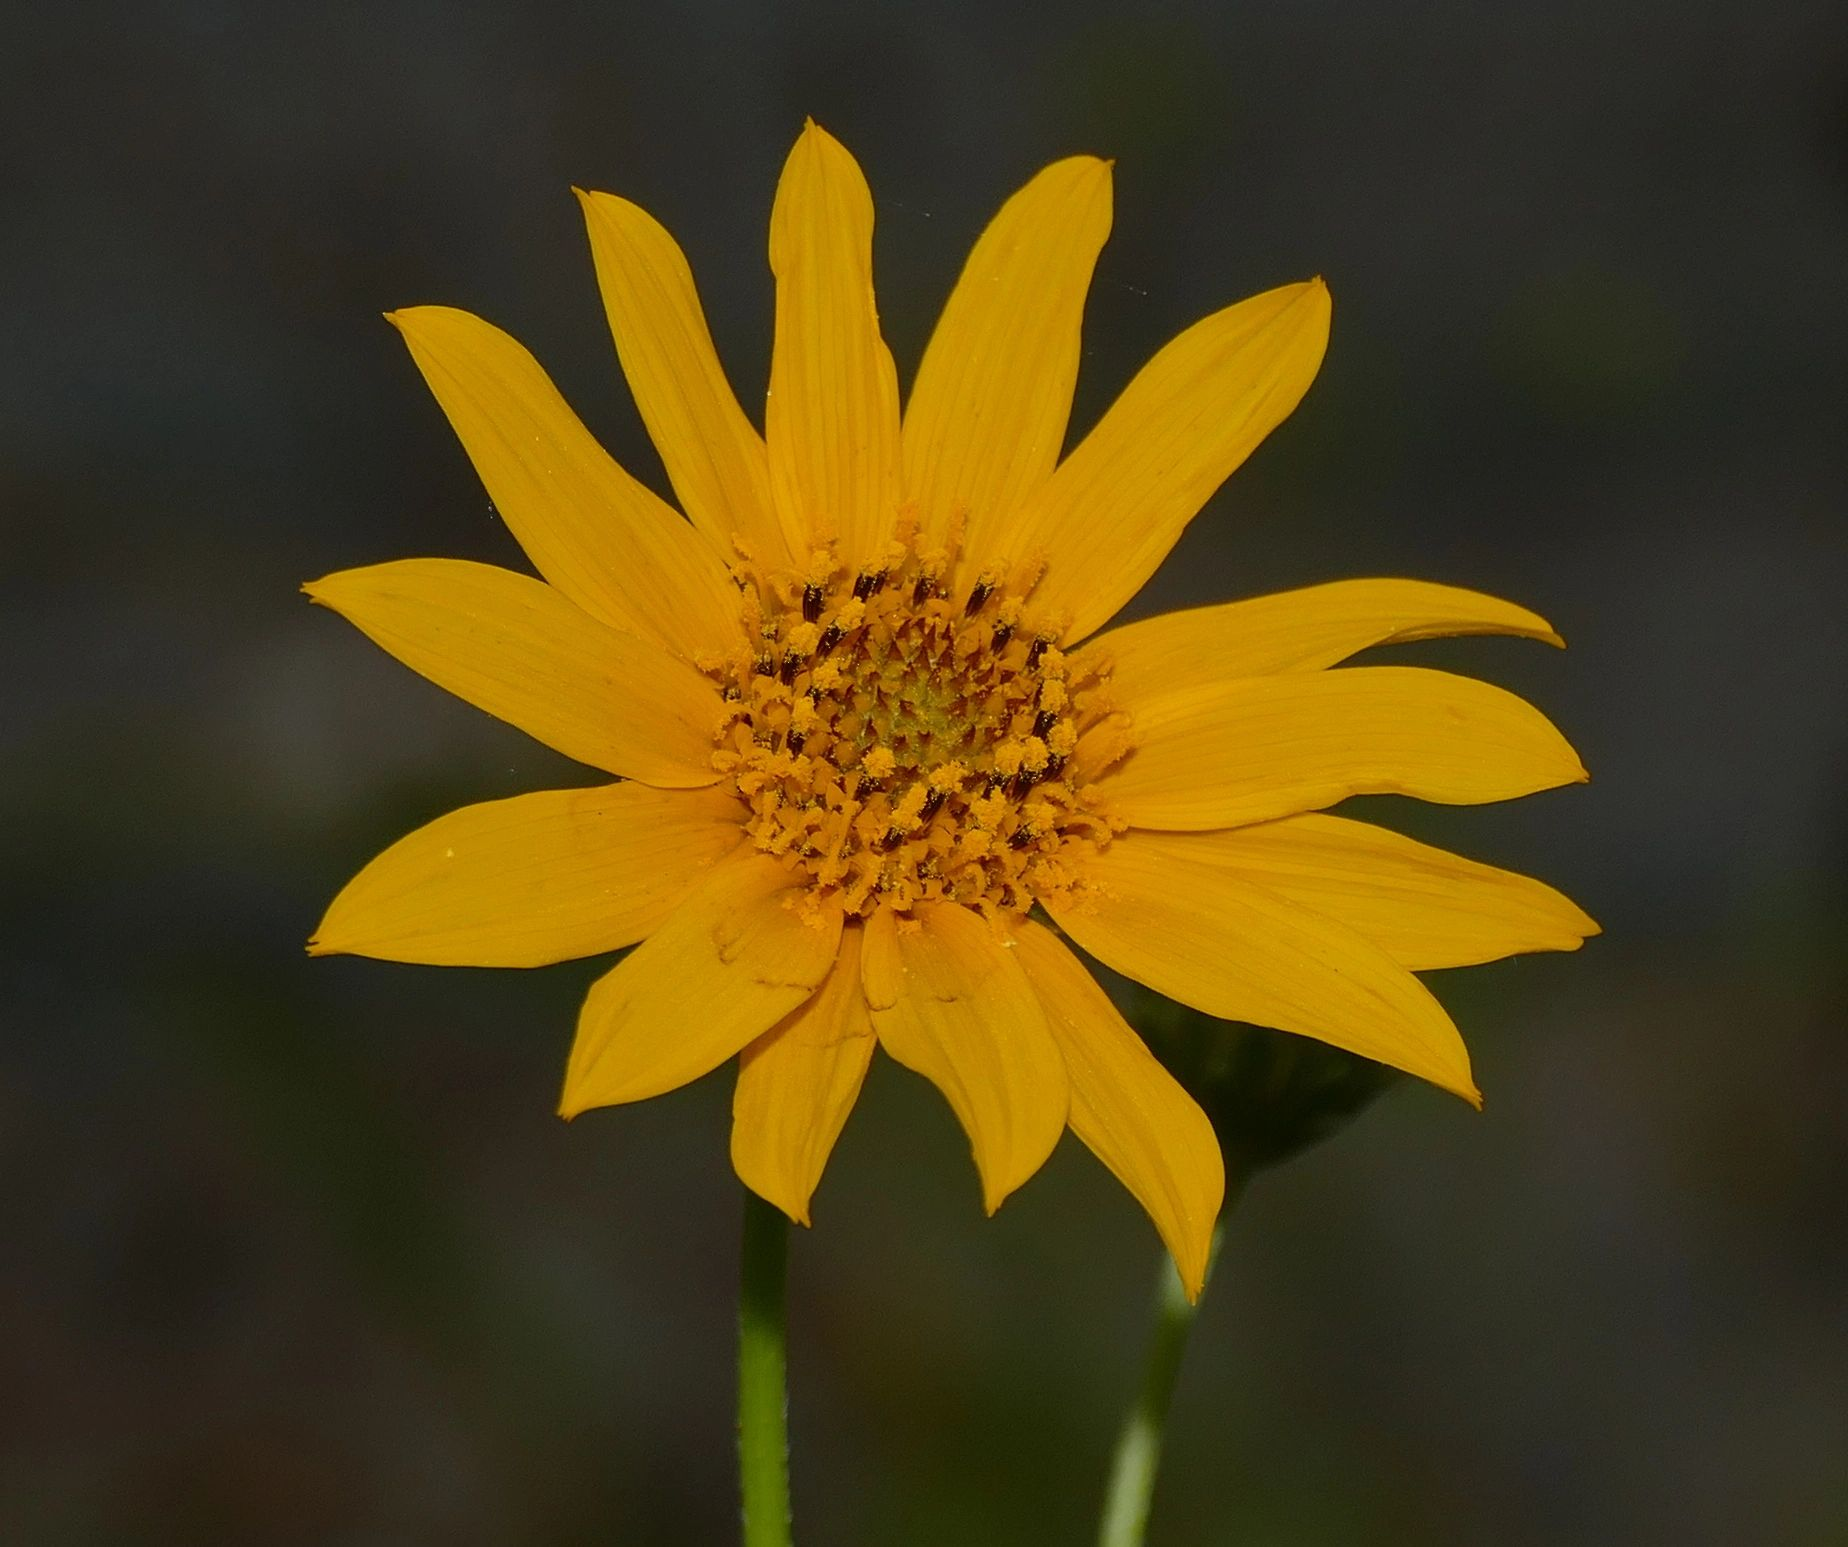 "{""blocks"":[{""key"":""bl311"",""text"":"" Helianthus occidentalis few leaf Western Sunflower - potted plants  john@easywildflowers.com \t "",""type"":""unstyled"",""depth"":0,""inlineStyleRanges"":[],""entityRanges"":[],""data"":{}}],""entityMap"":{}}"